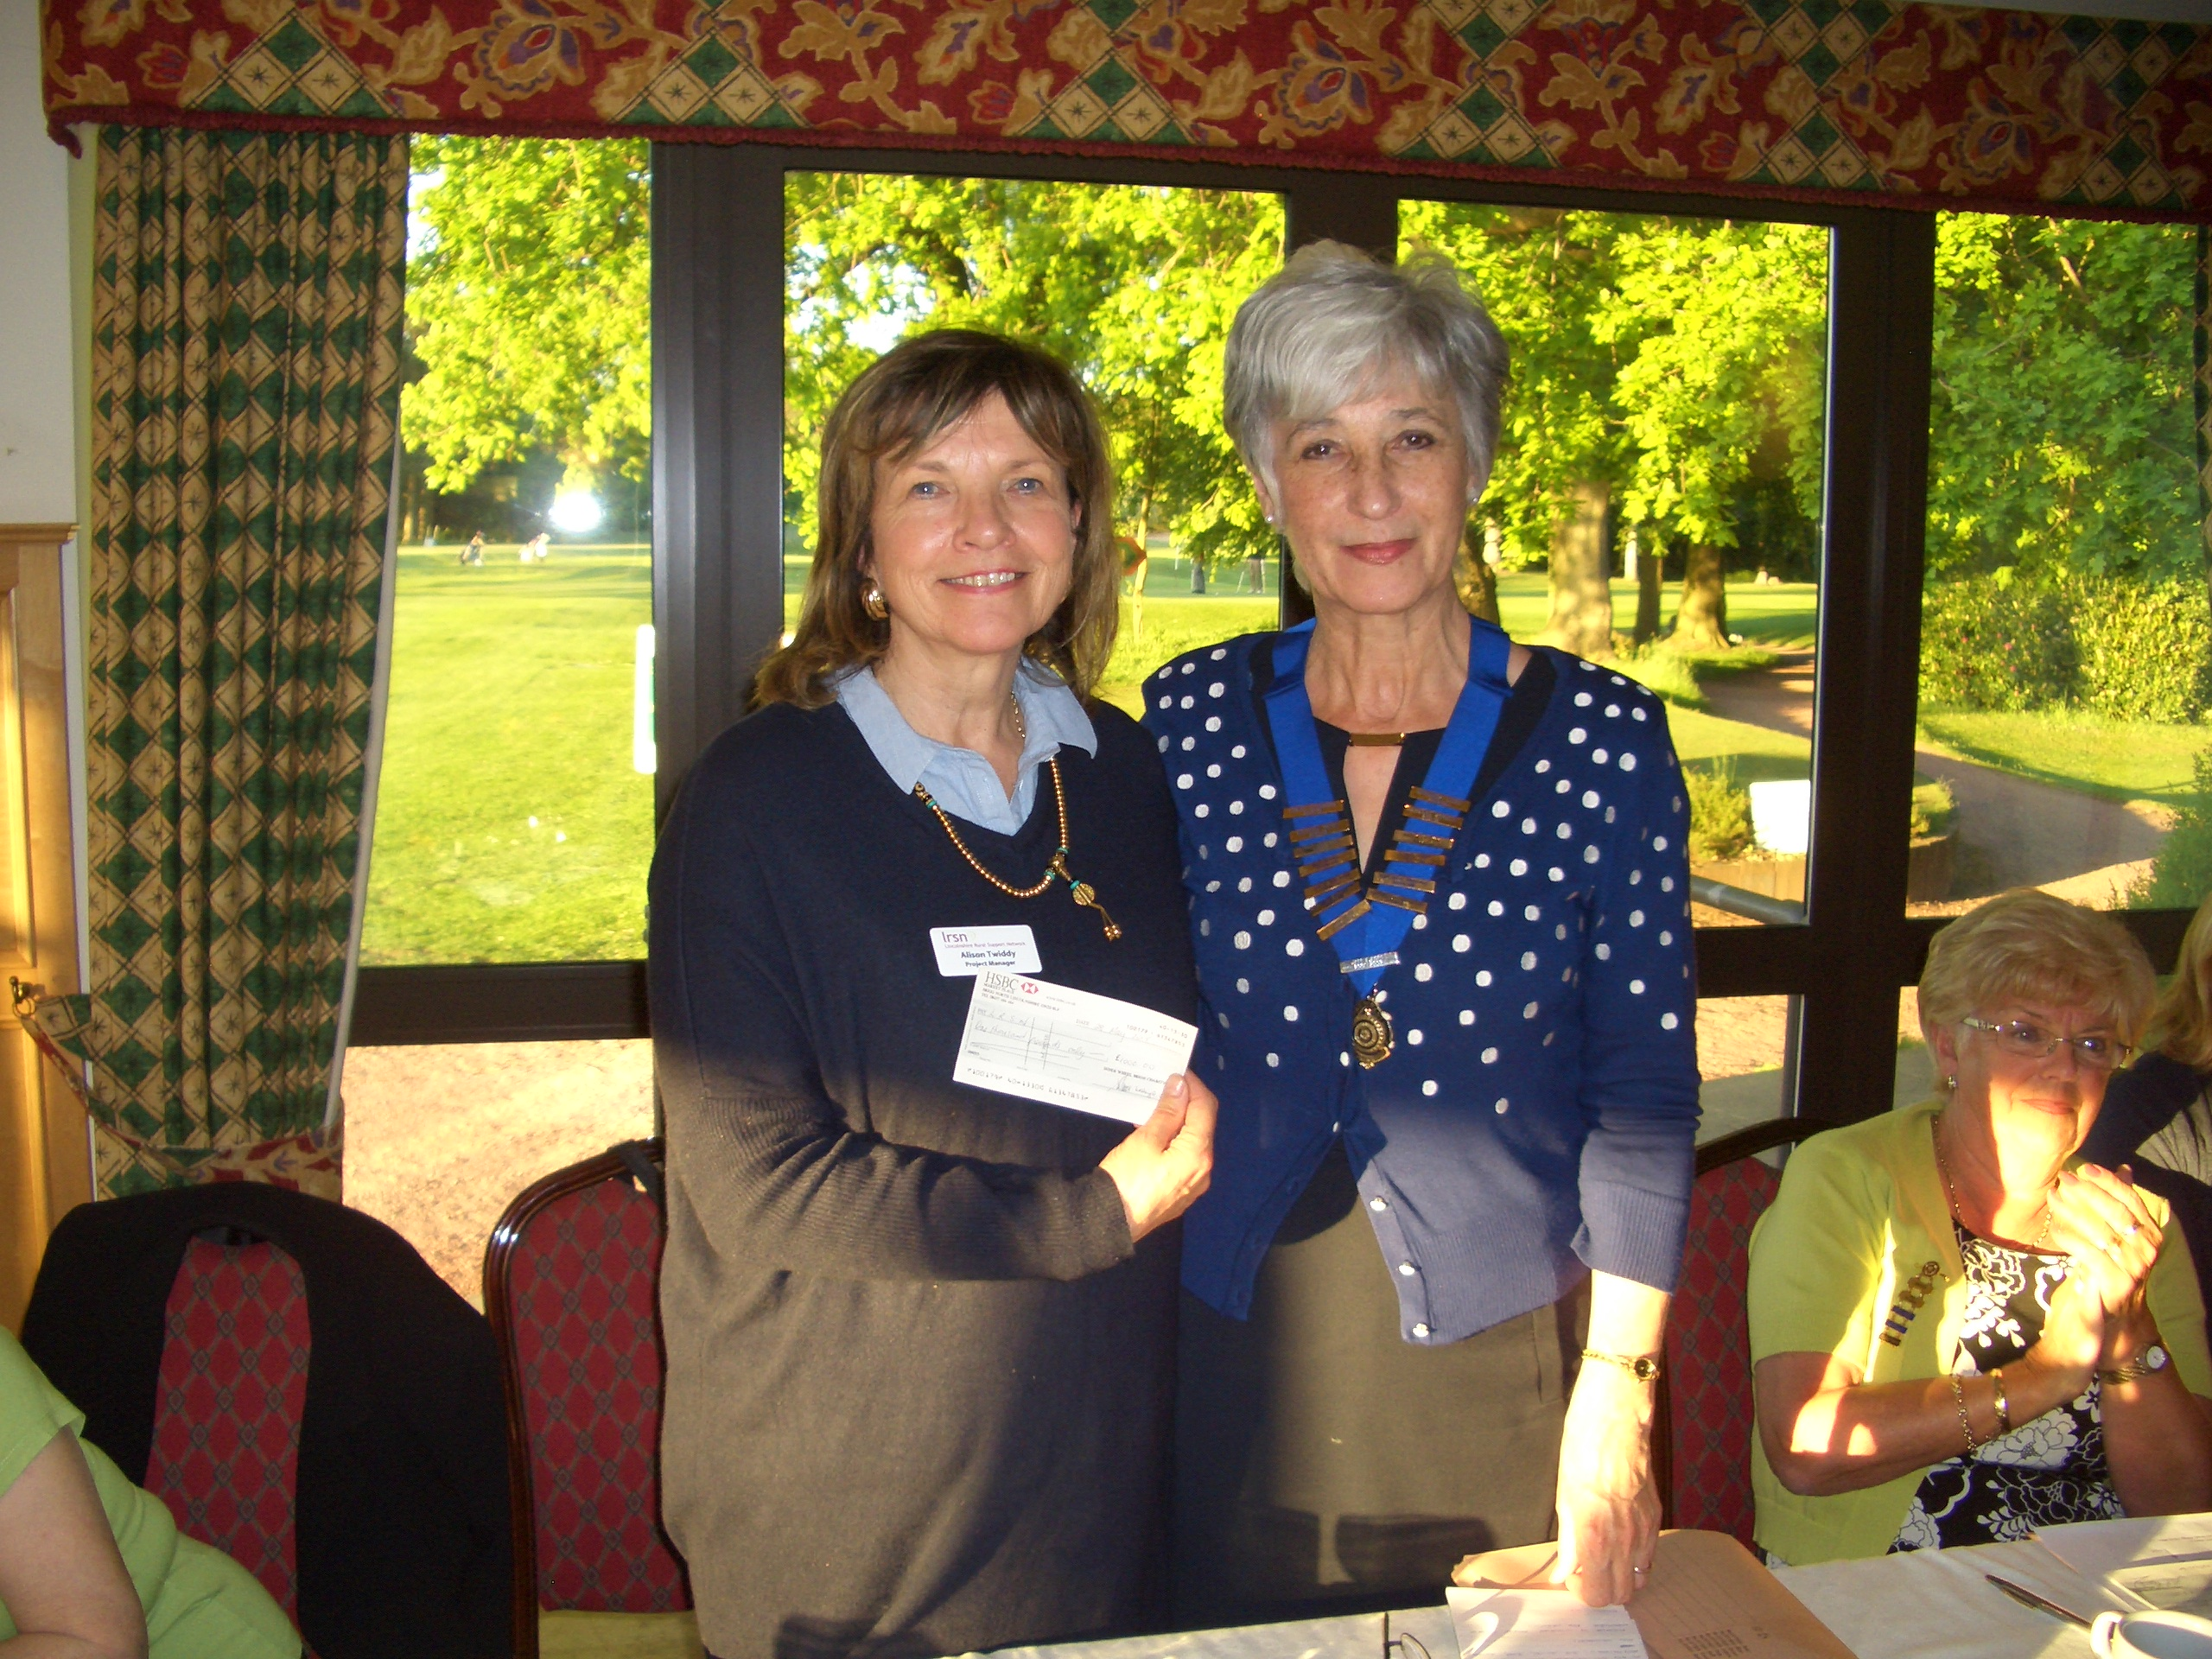 Alison Twiddy, on the left, receiving a cheque for £1000 from the Brigg Inner Wheel Club President, Lesley Alderson